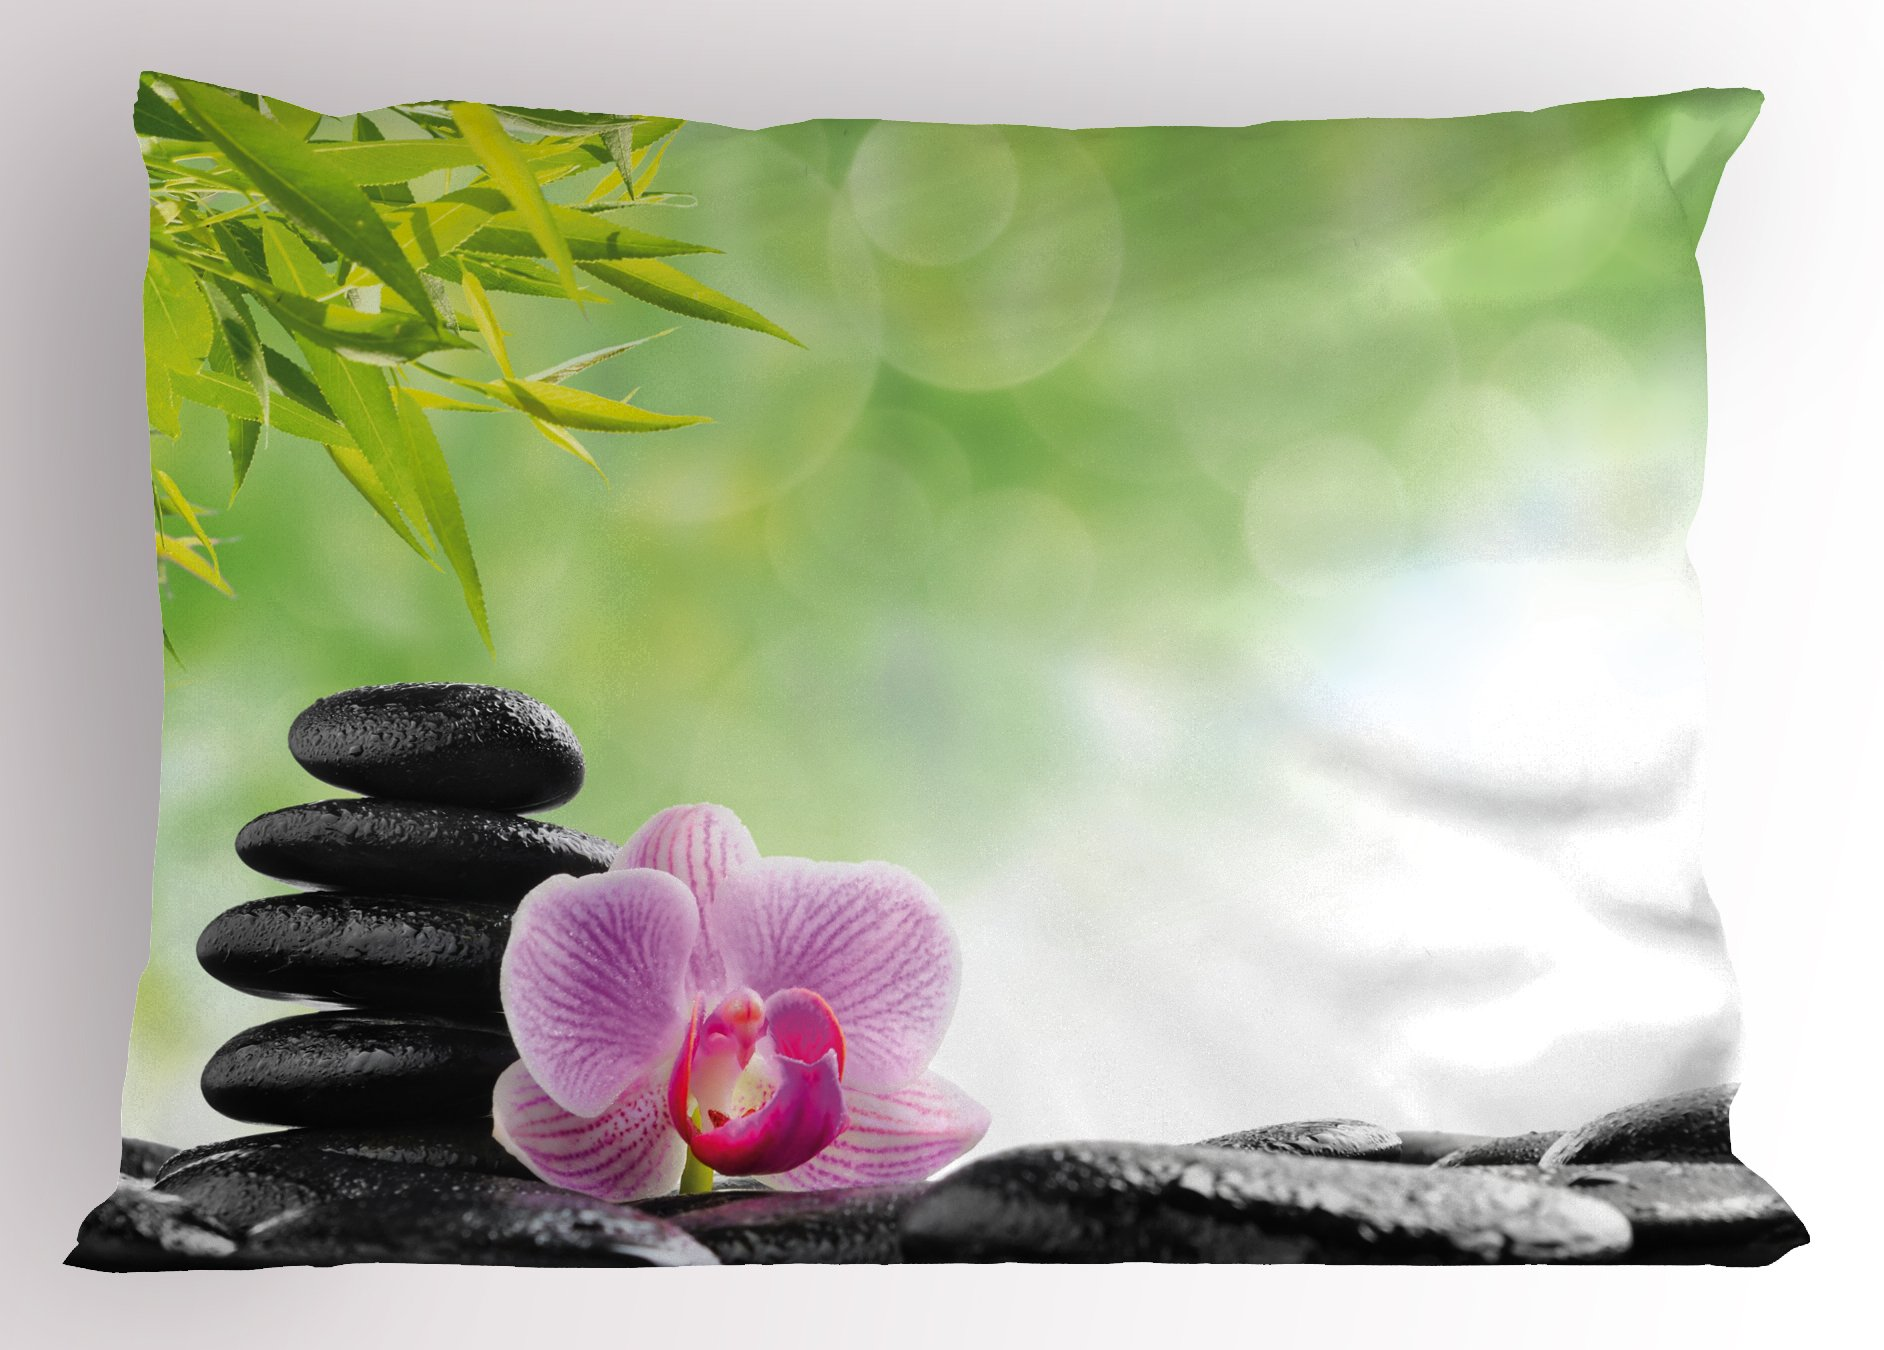 Ambesonne Asian Pillow Sham, Zen Basalt Stone and Orchid Flower with Dew Harmony Therapeutic Spa Theme Photo, Decorative Standard Queen Size Printed Pillowcase, 30 X 20 inches, Green Black Pink